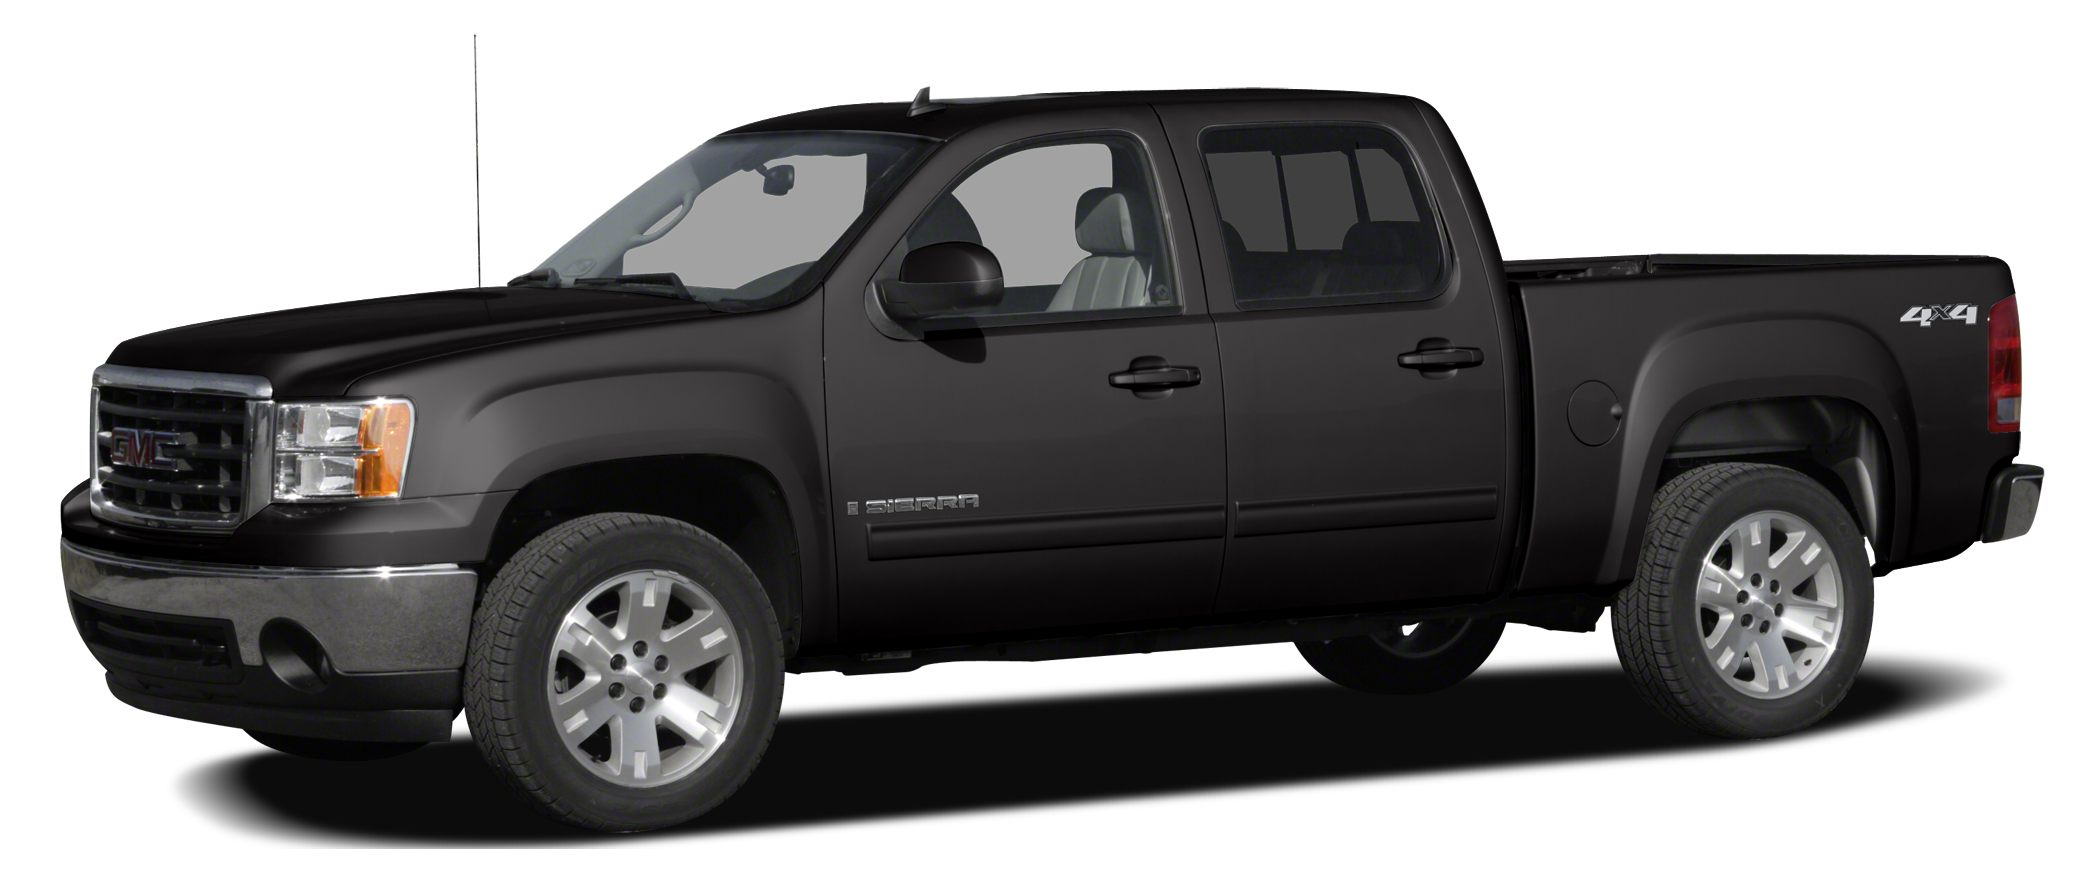 2011 GMC Sierra 1500 SLT ITS OUR 50TH ANNIVERSARY HERE AT MARTYS AND TO CELEBRATE WERE OFFERING T